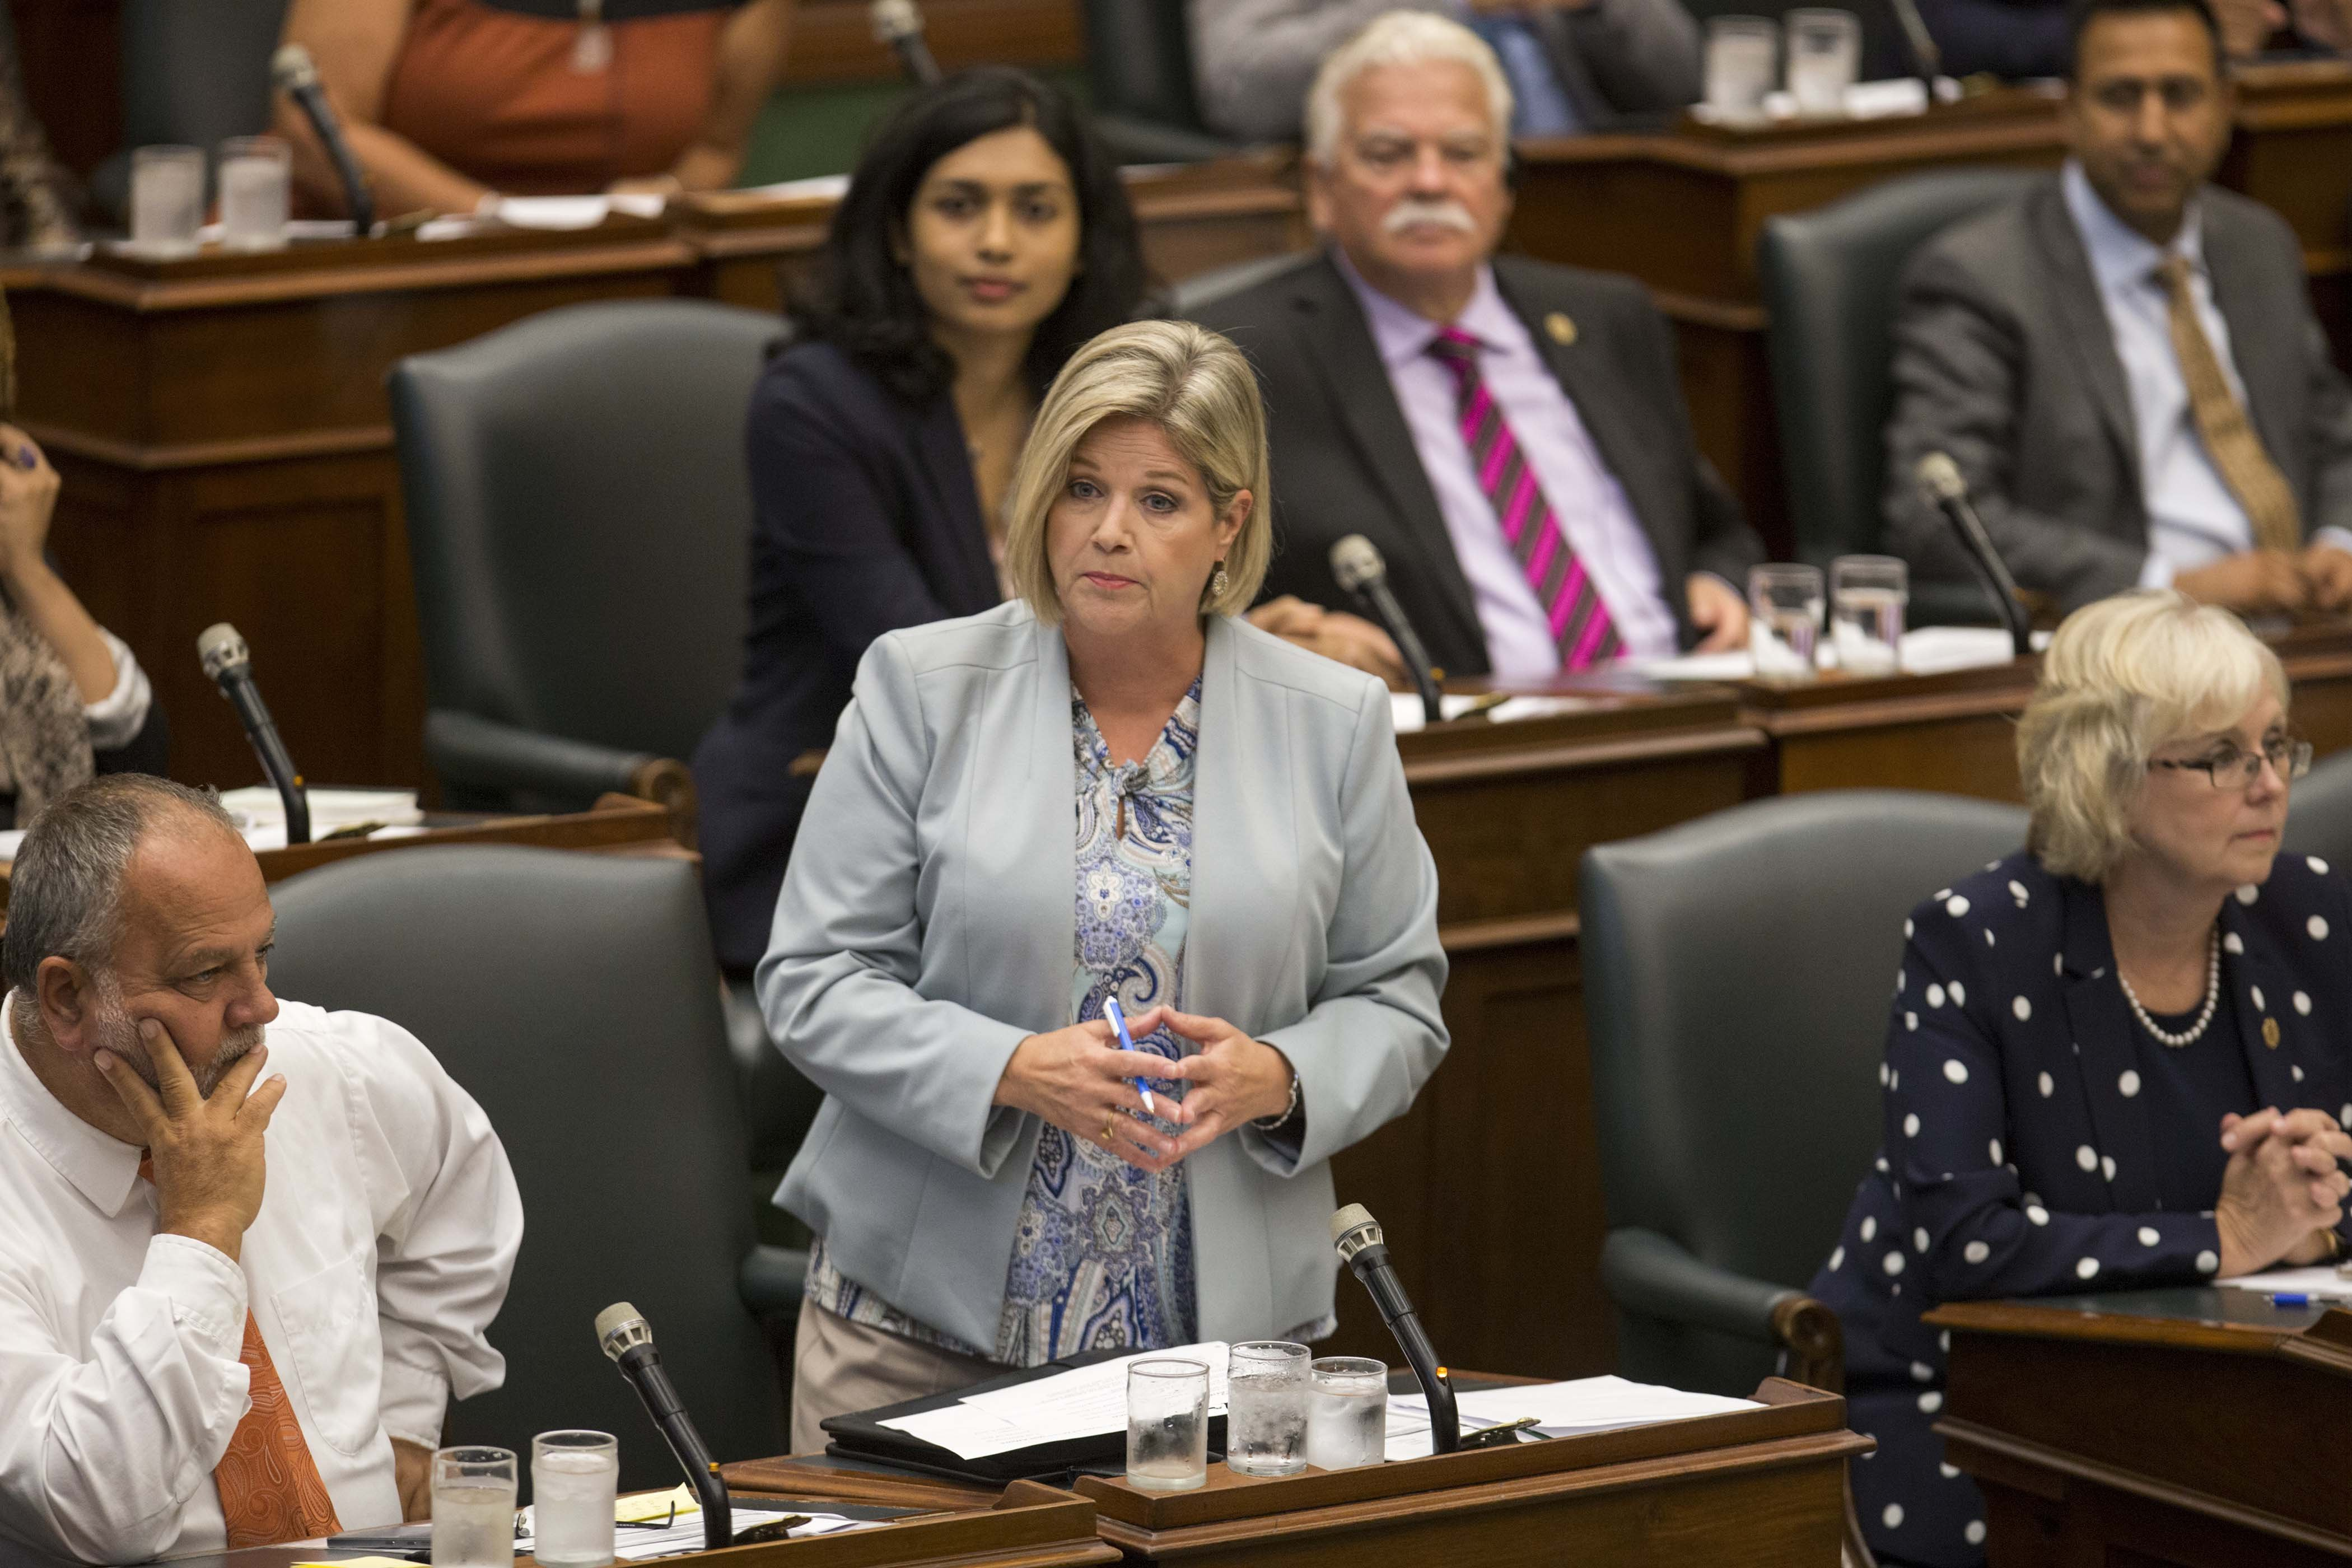 NDP calls for 'independent judicial inquiry' into province's COVID-19 response